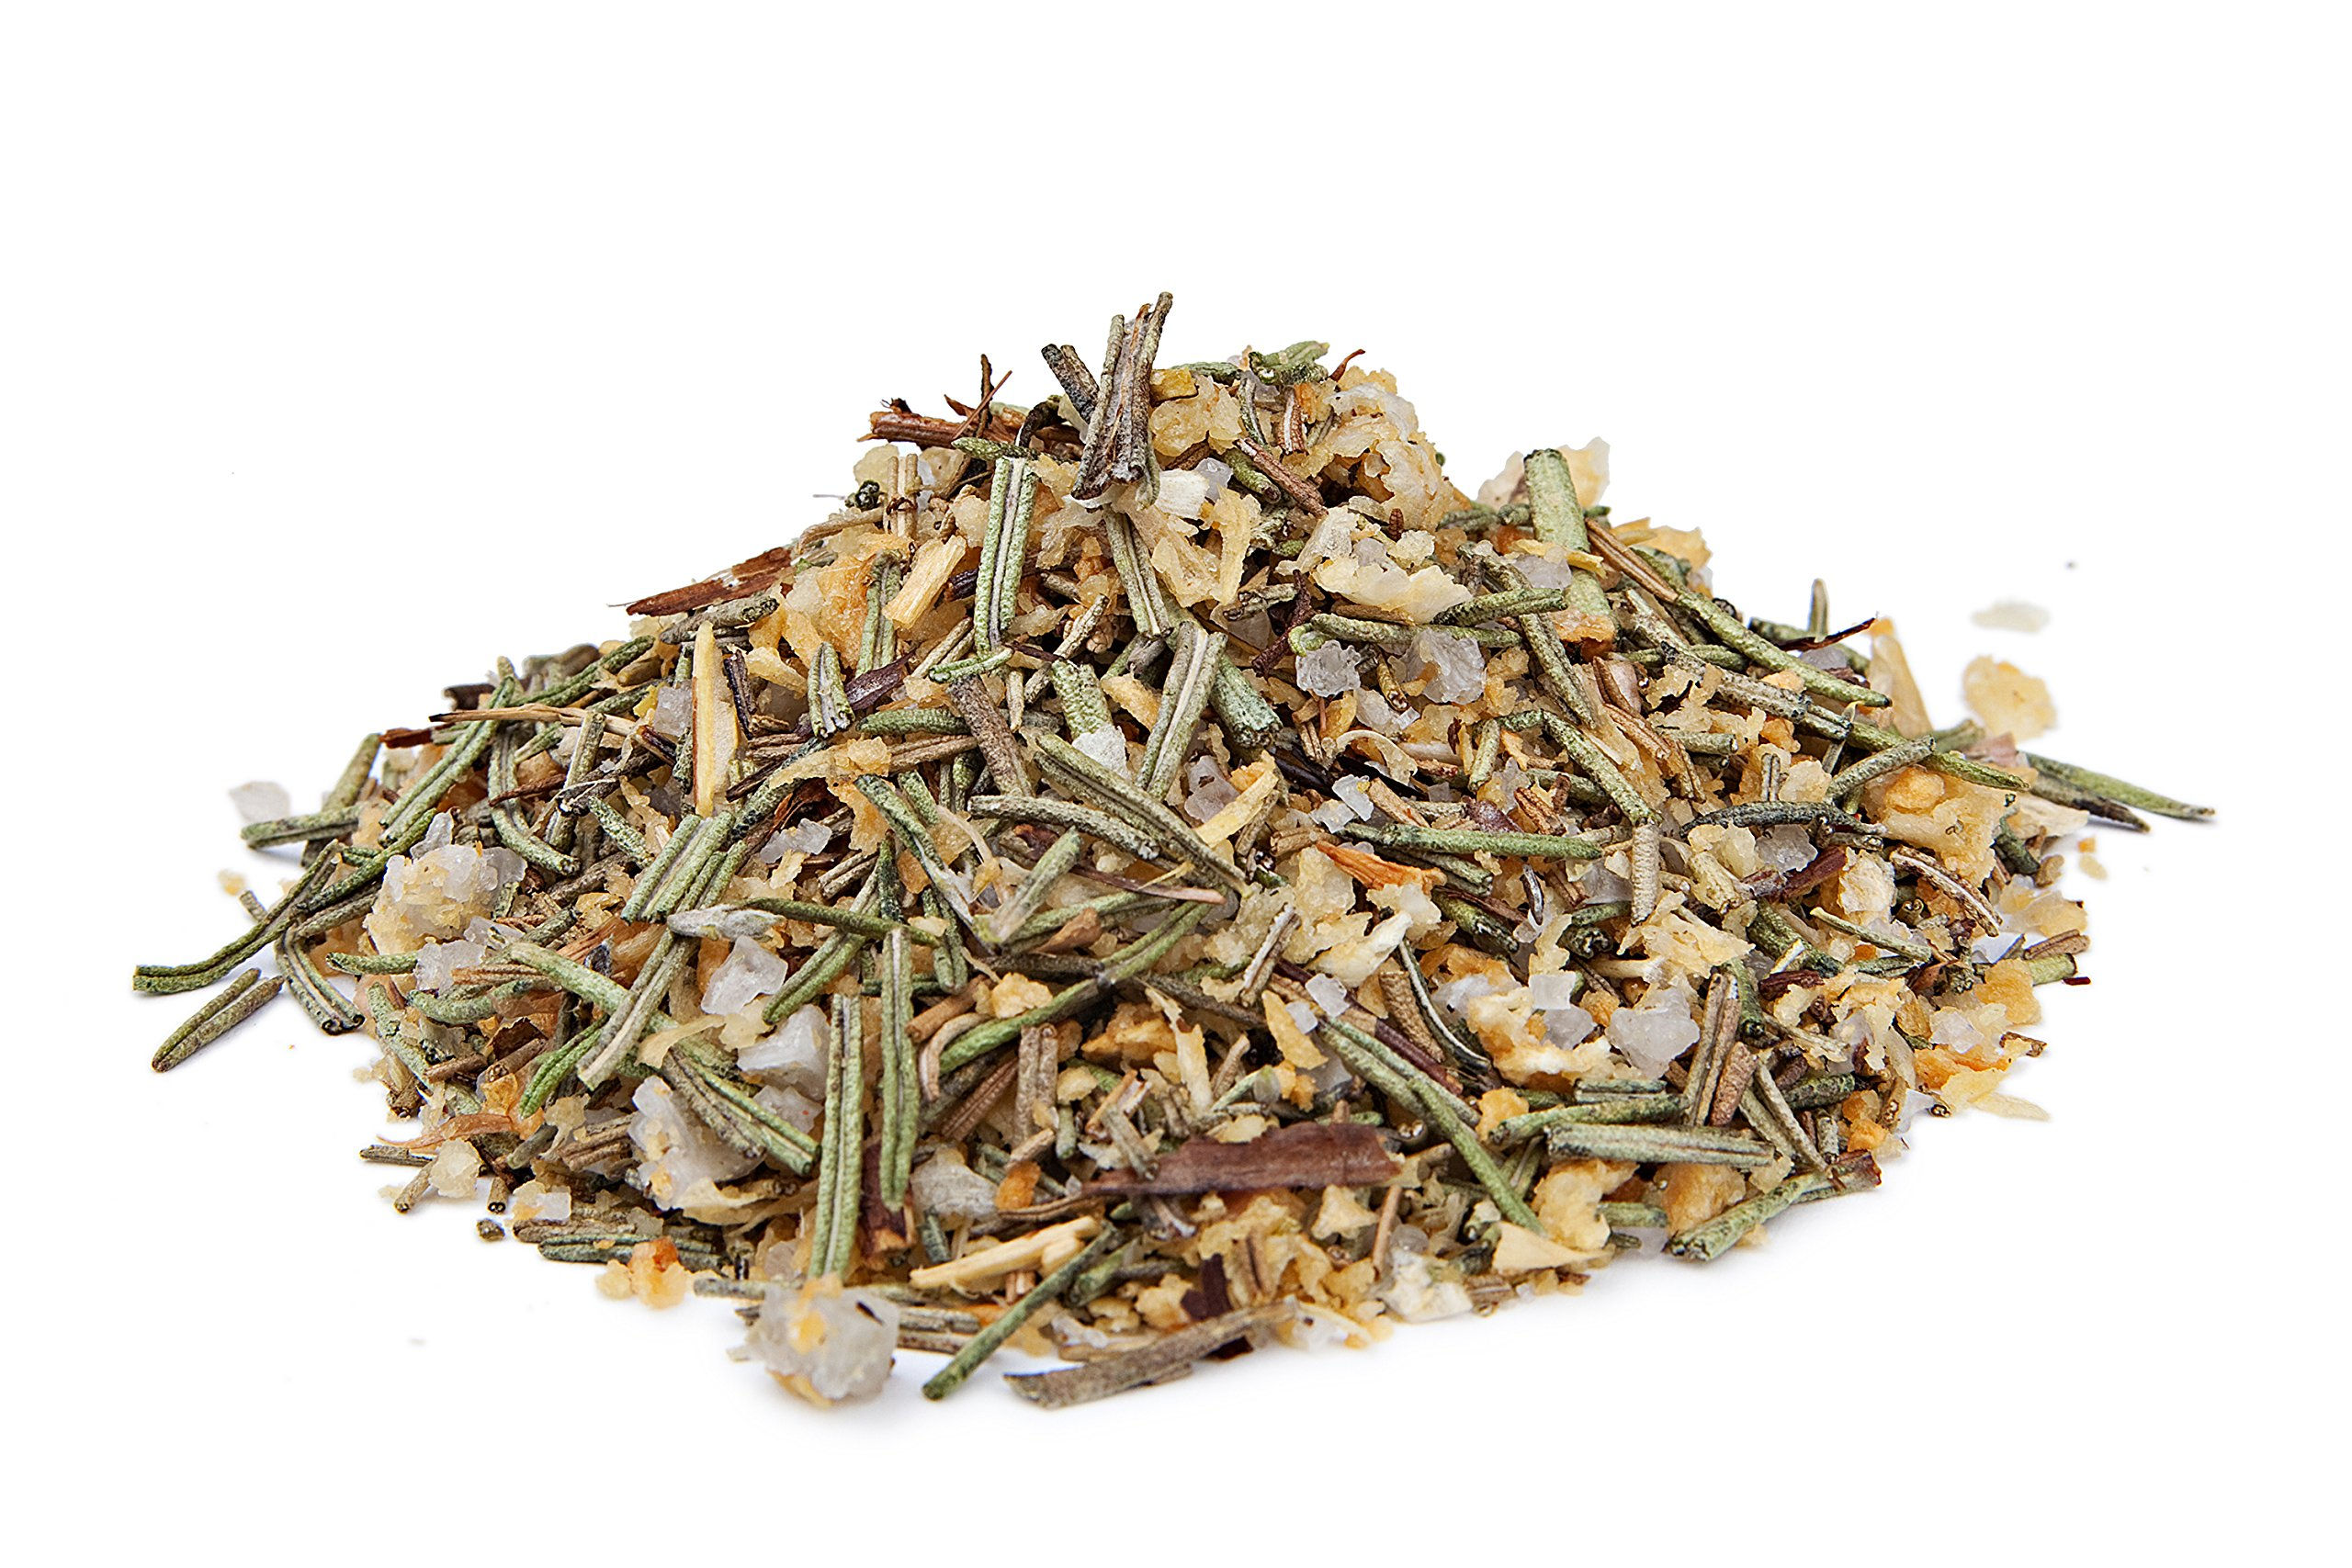 The Spice Way - Poultry Seasonings - Recipe Inside - Rosemary and Garlic Blend for Poultry 4oz.